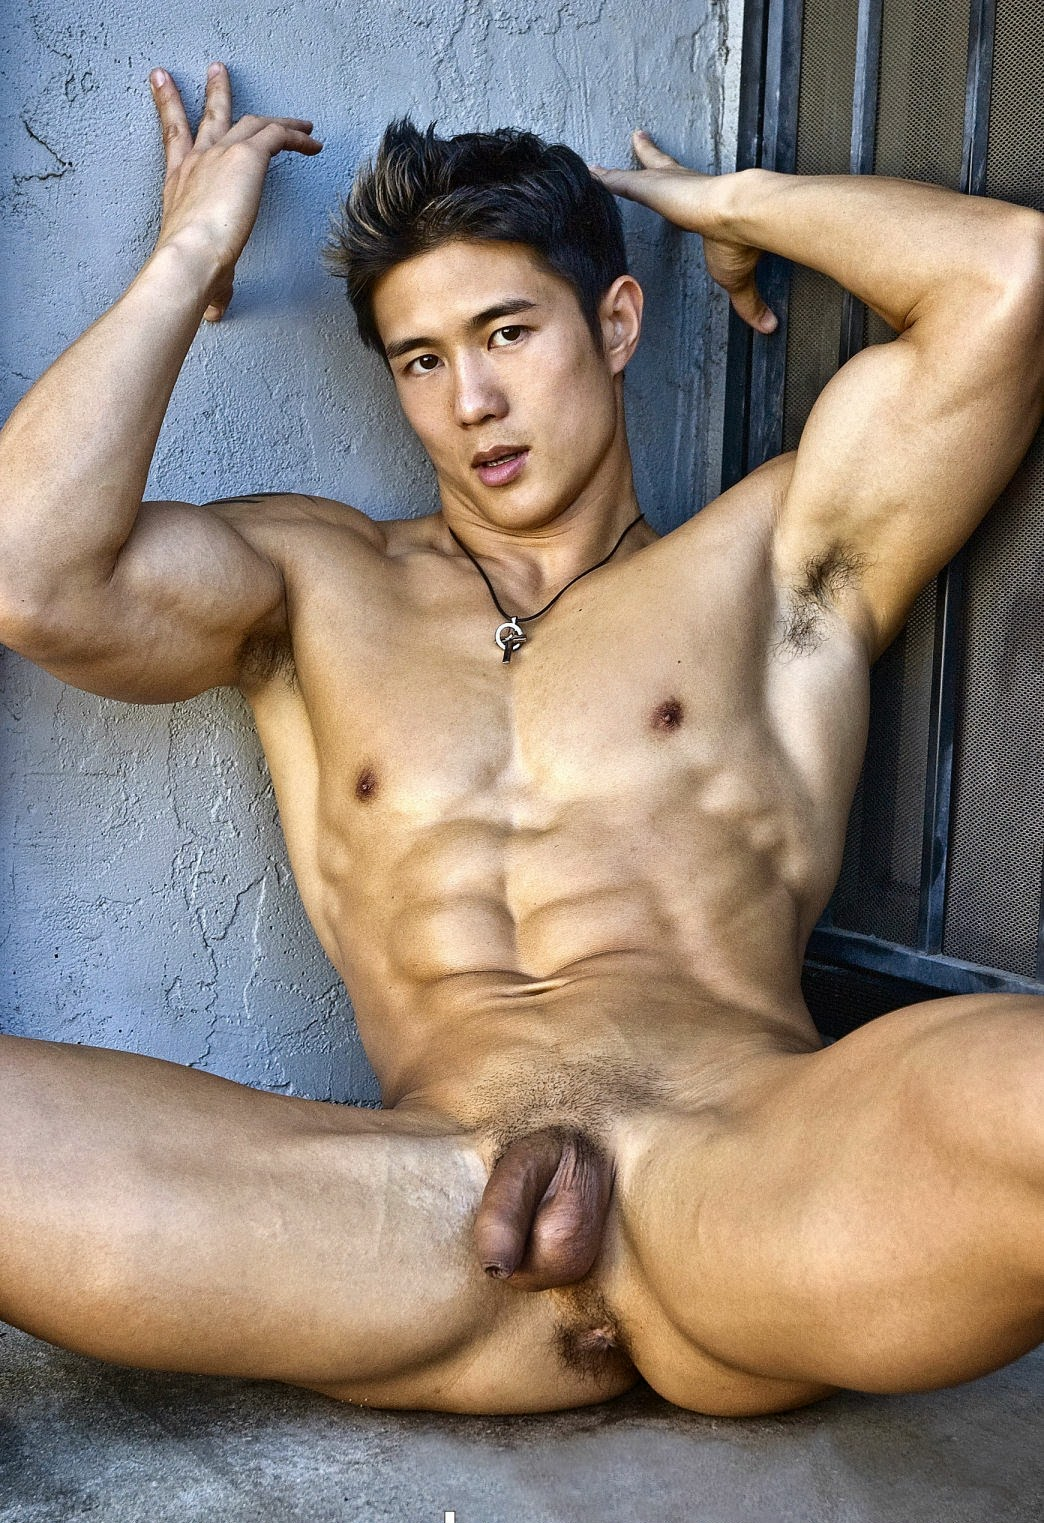 Ass and pinoy hunk nude photo cyrus